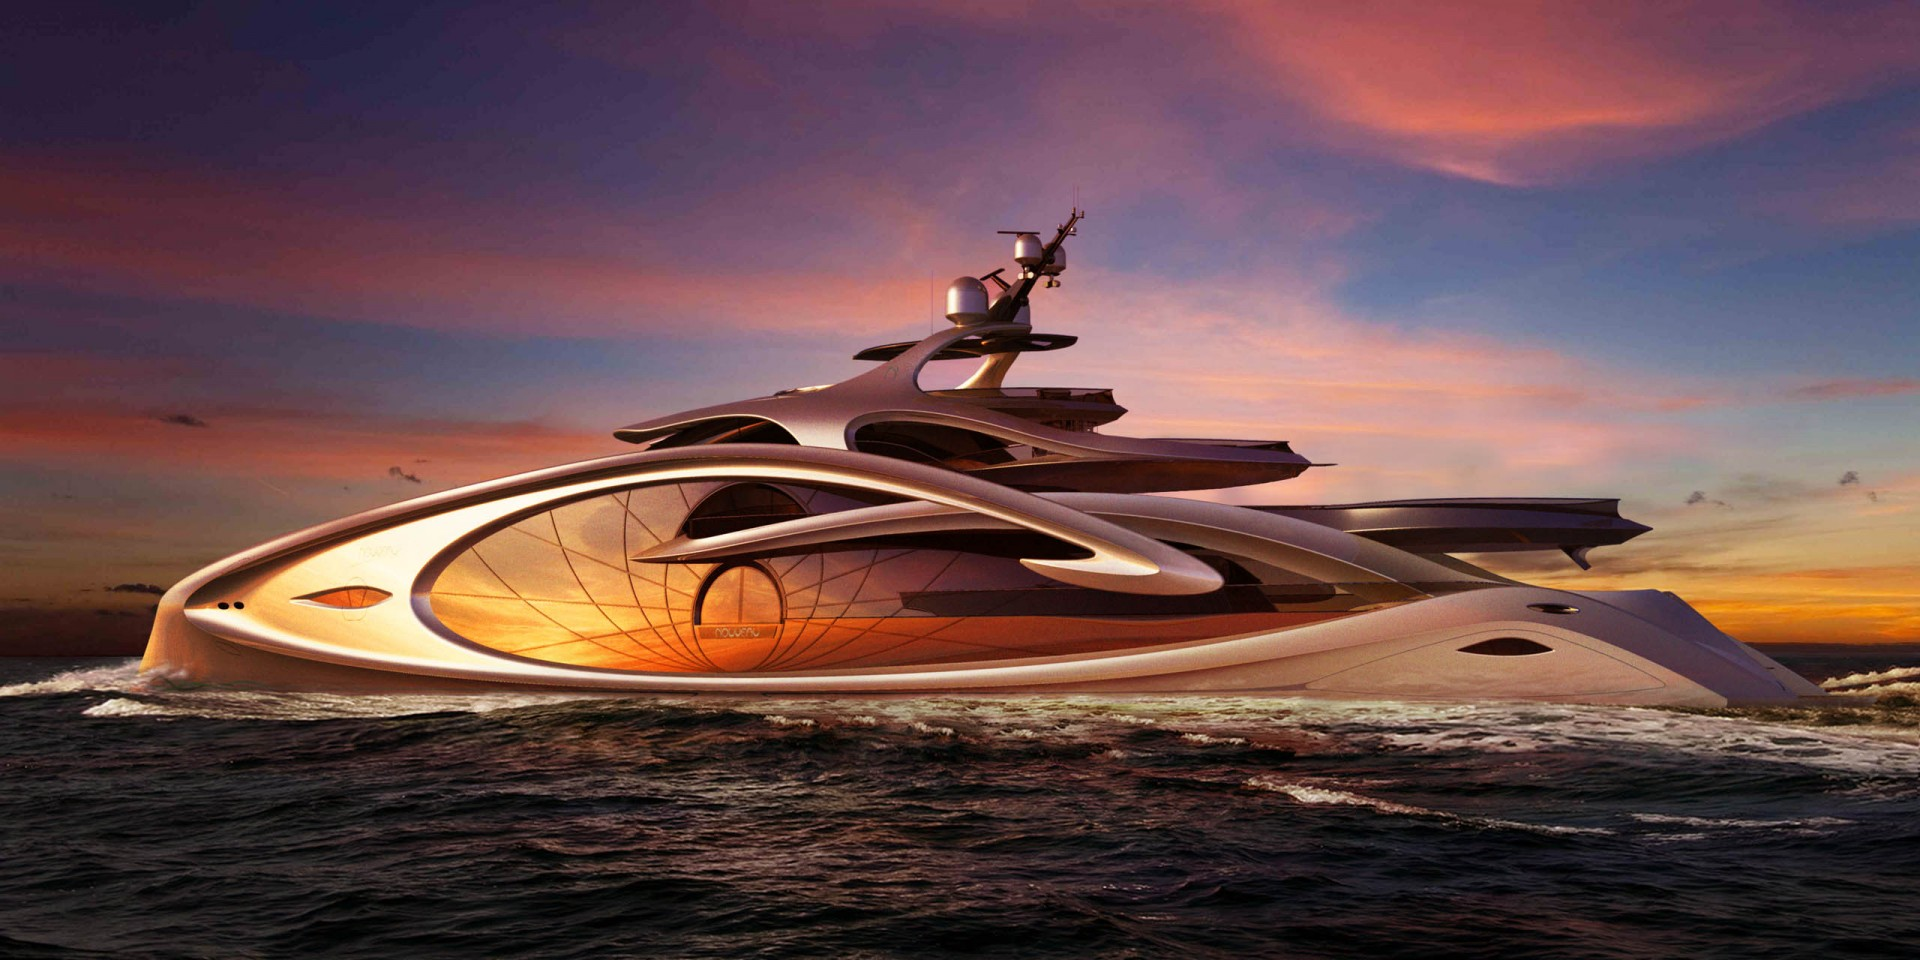 Nouveau Super Yacht Concept After Sunset